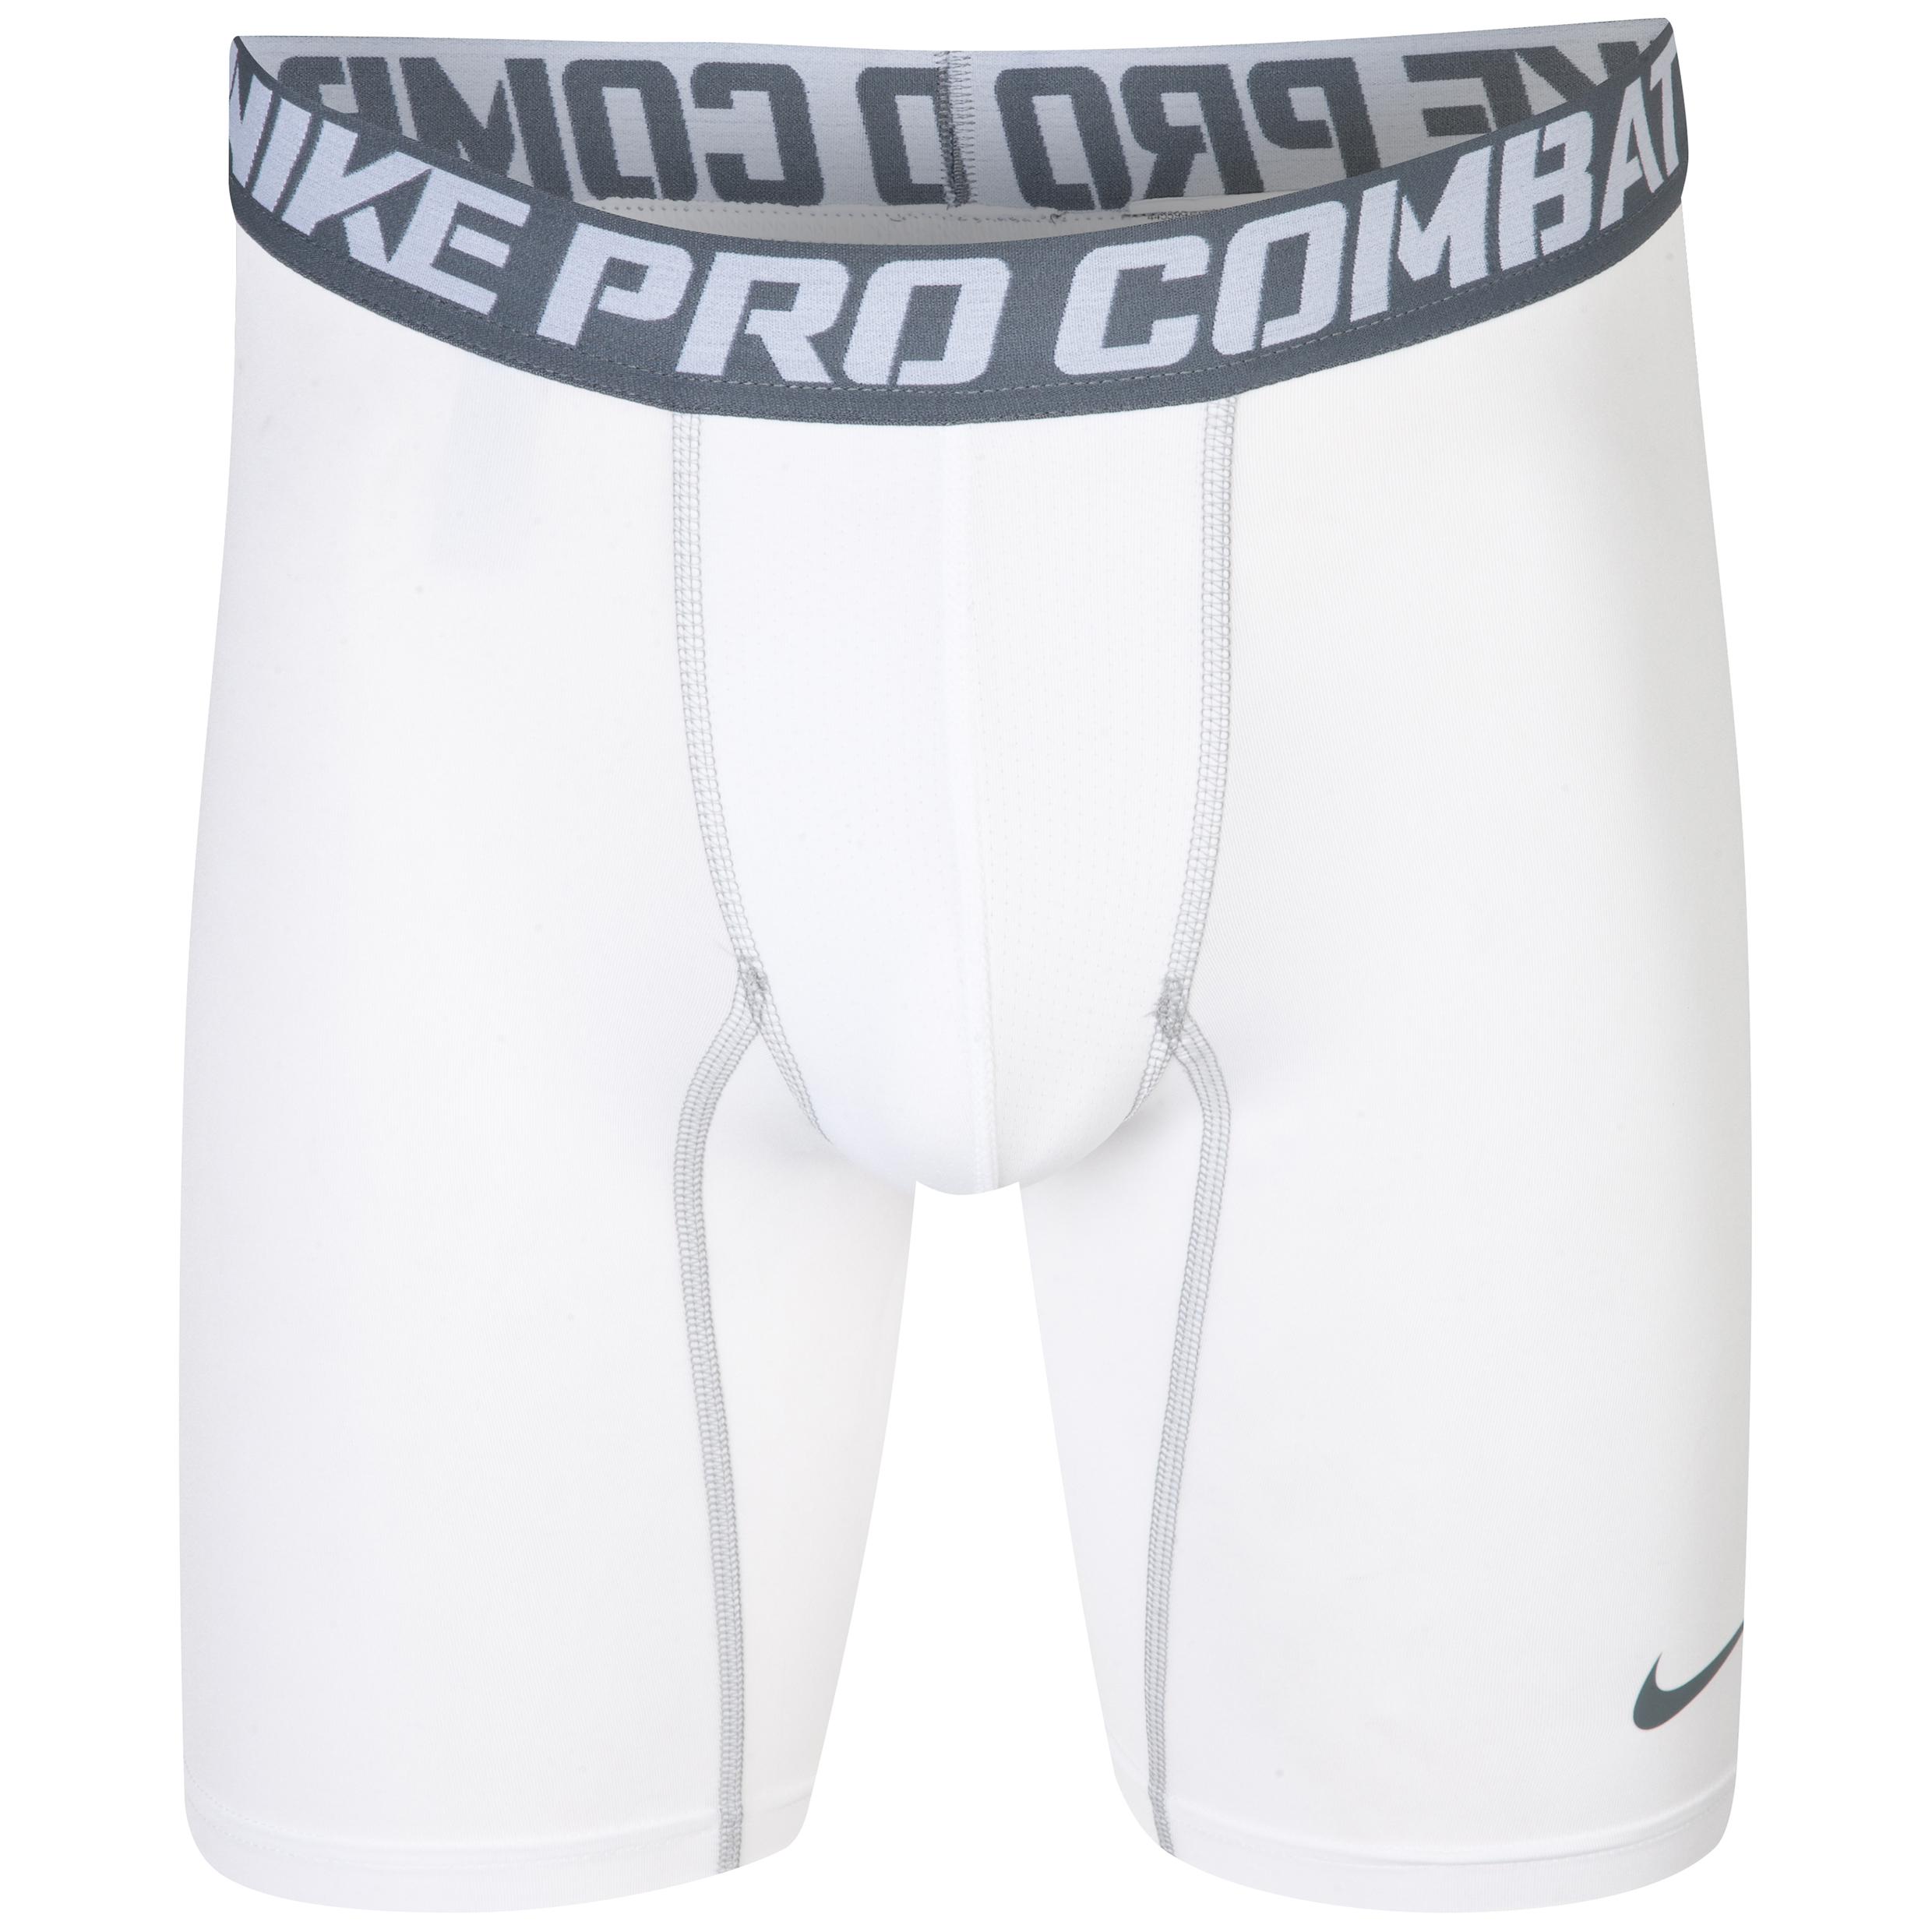 Nike Pro Combat Core Base Layer Shorts White